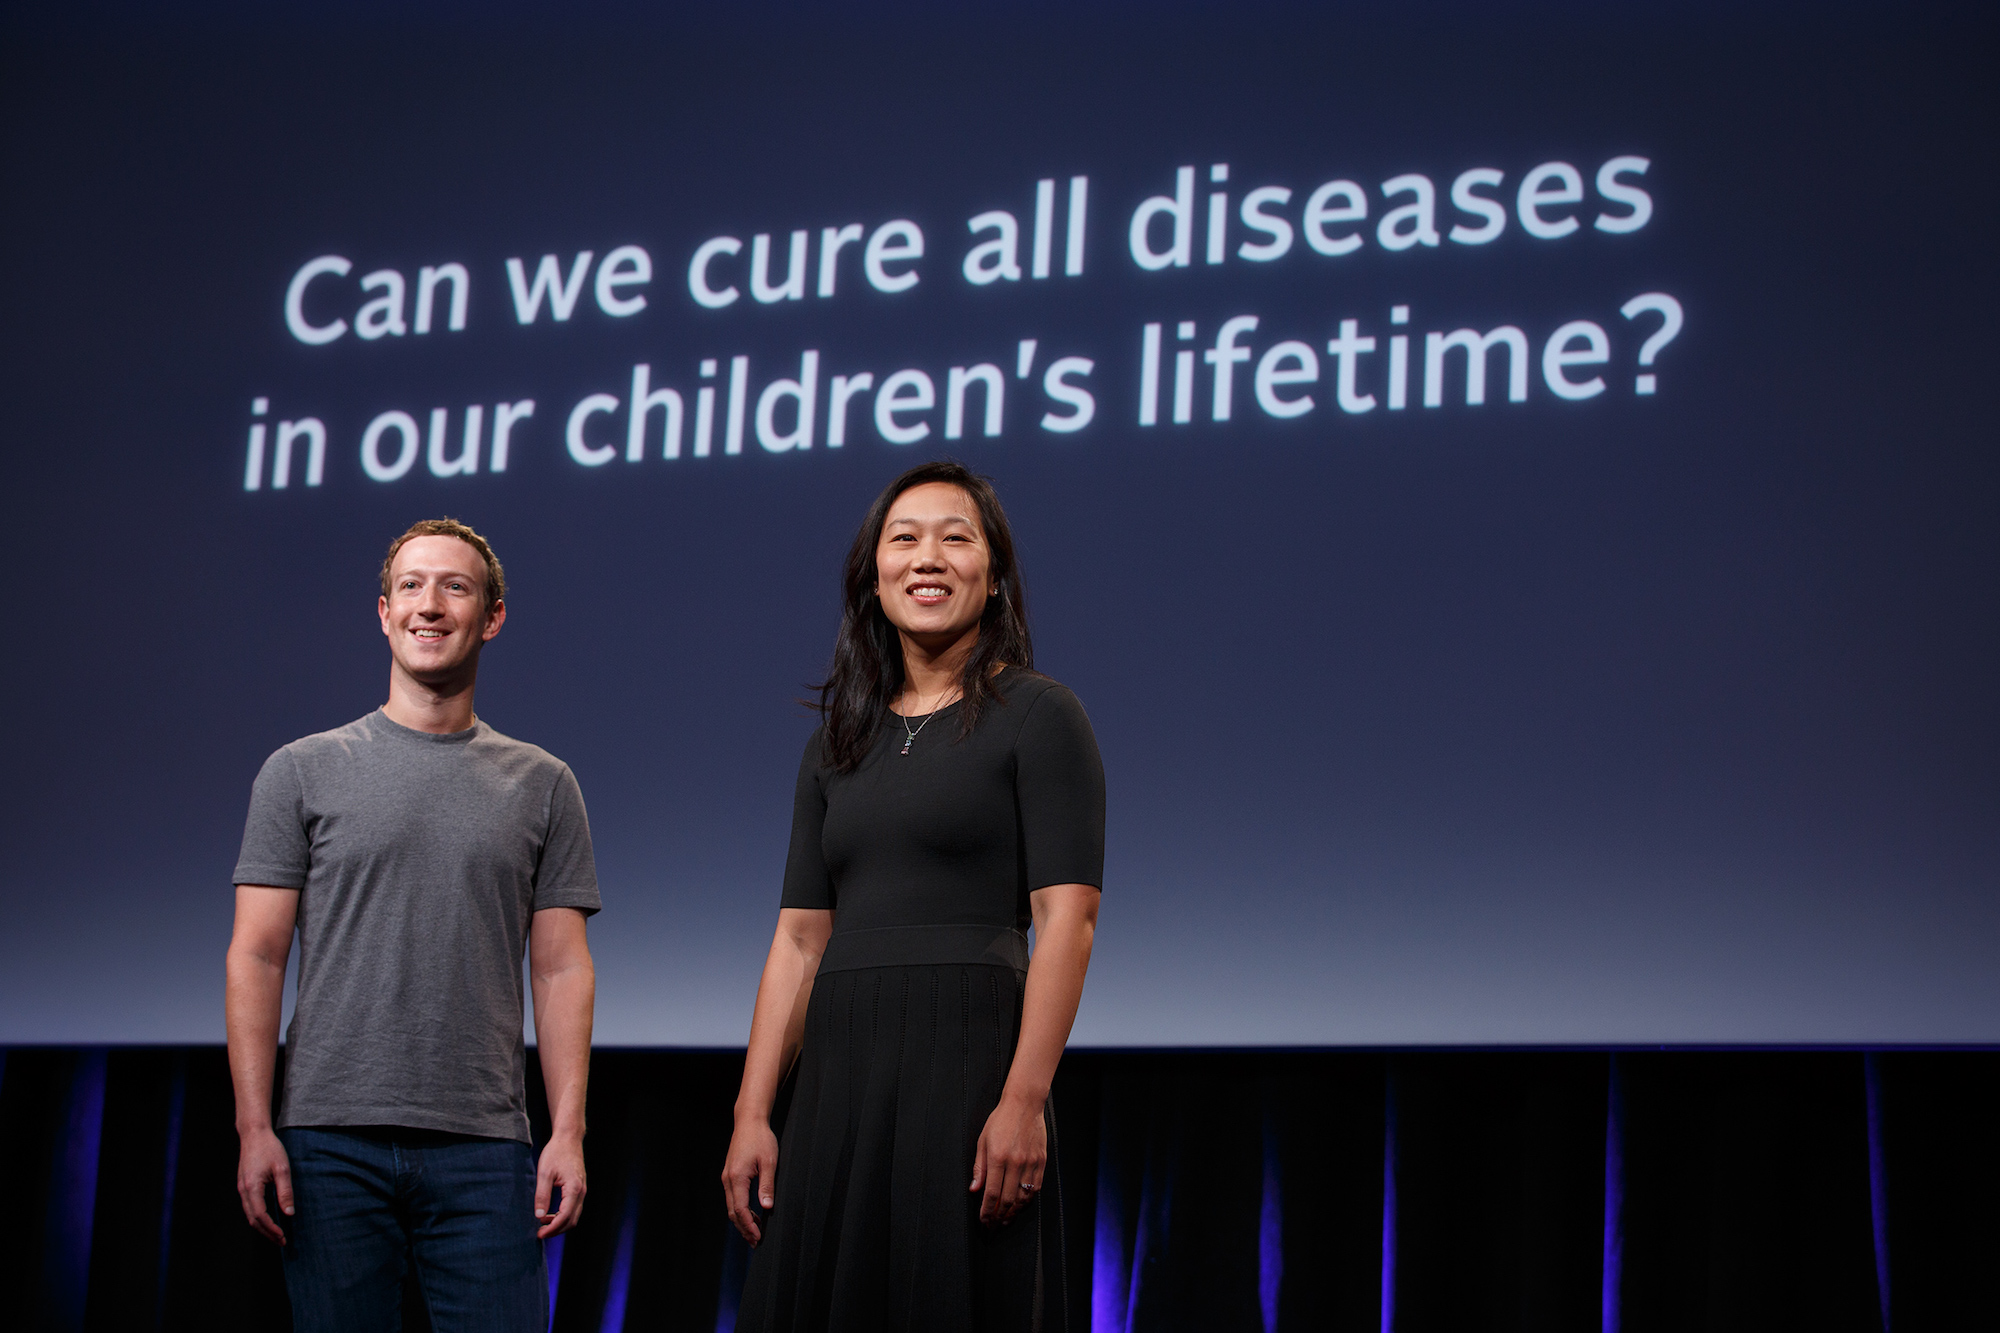 Mark Zuckerberg and Priscilla Chan announce $3 billion initiative to 'cure all diseases'